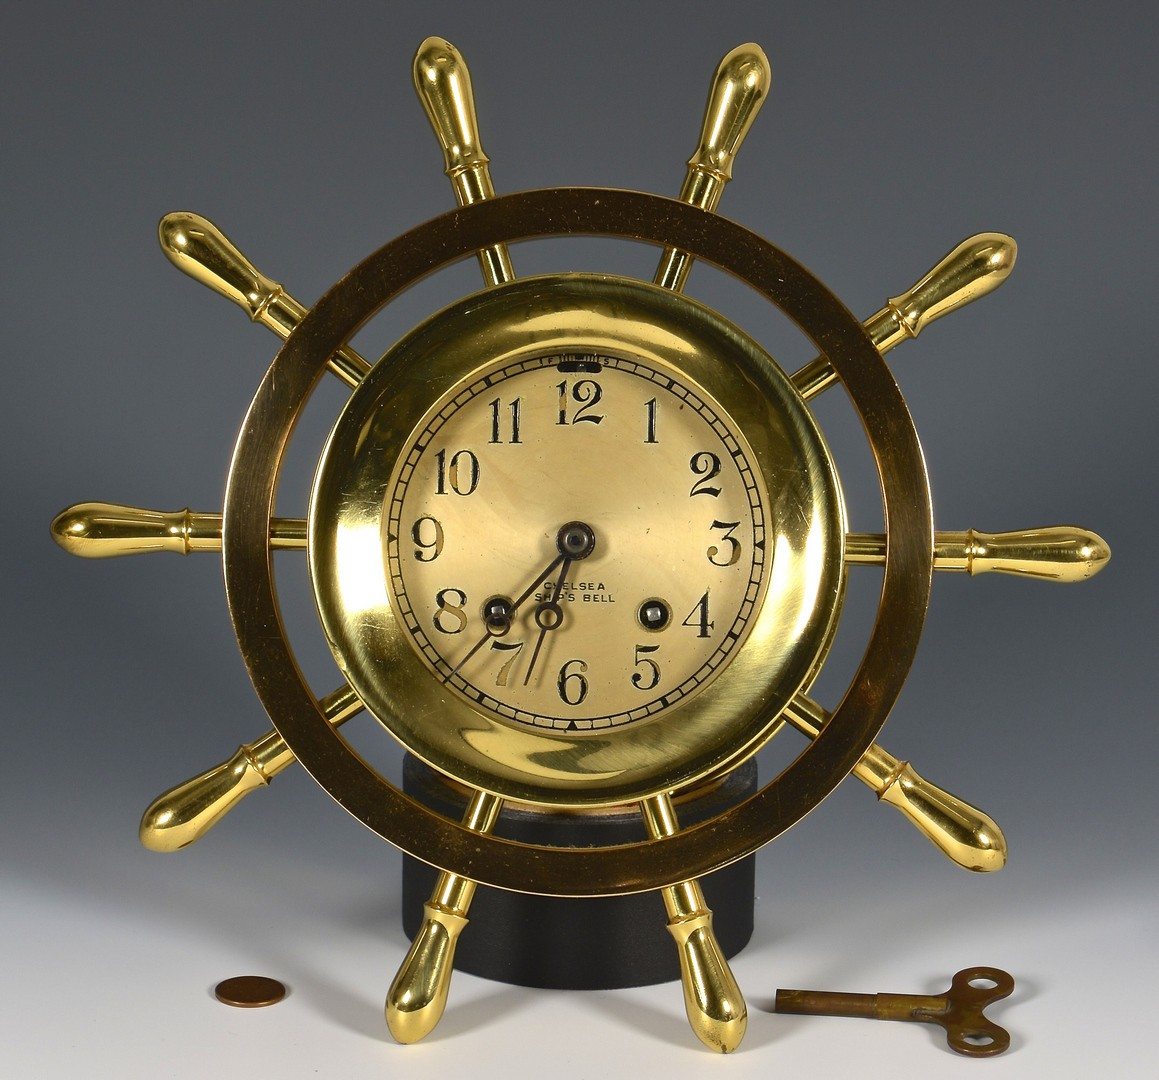 Lot 492: Brass Marine Chelsea Ship's Bell Clock